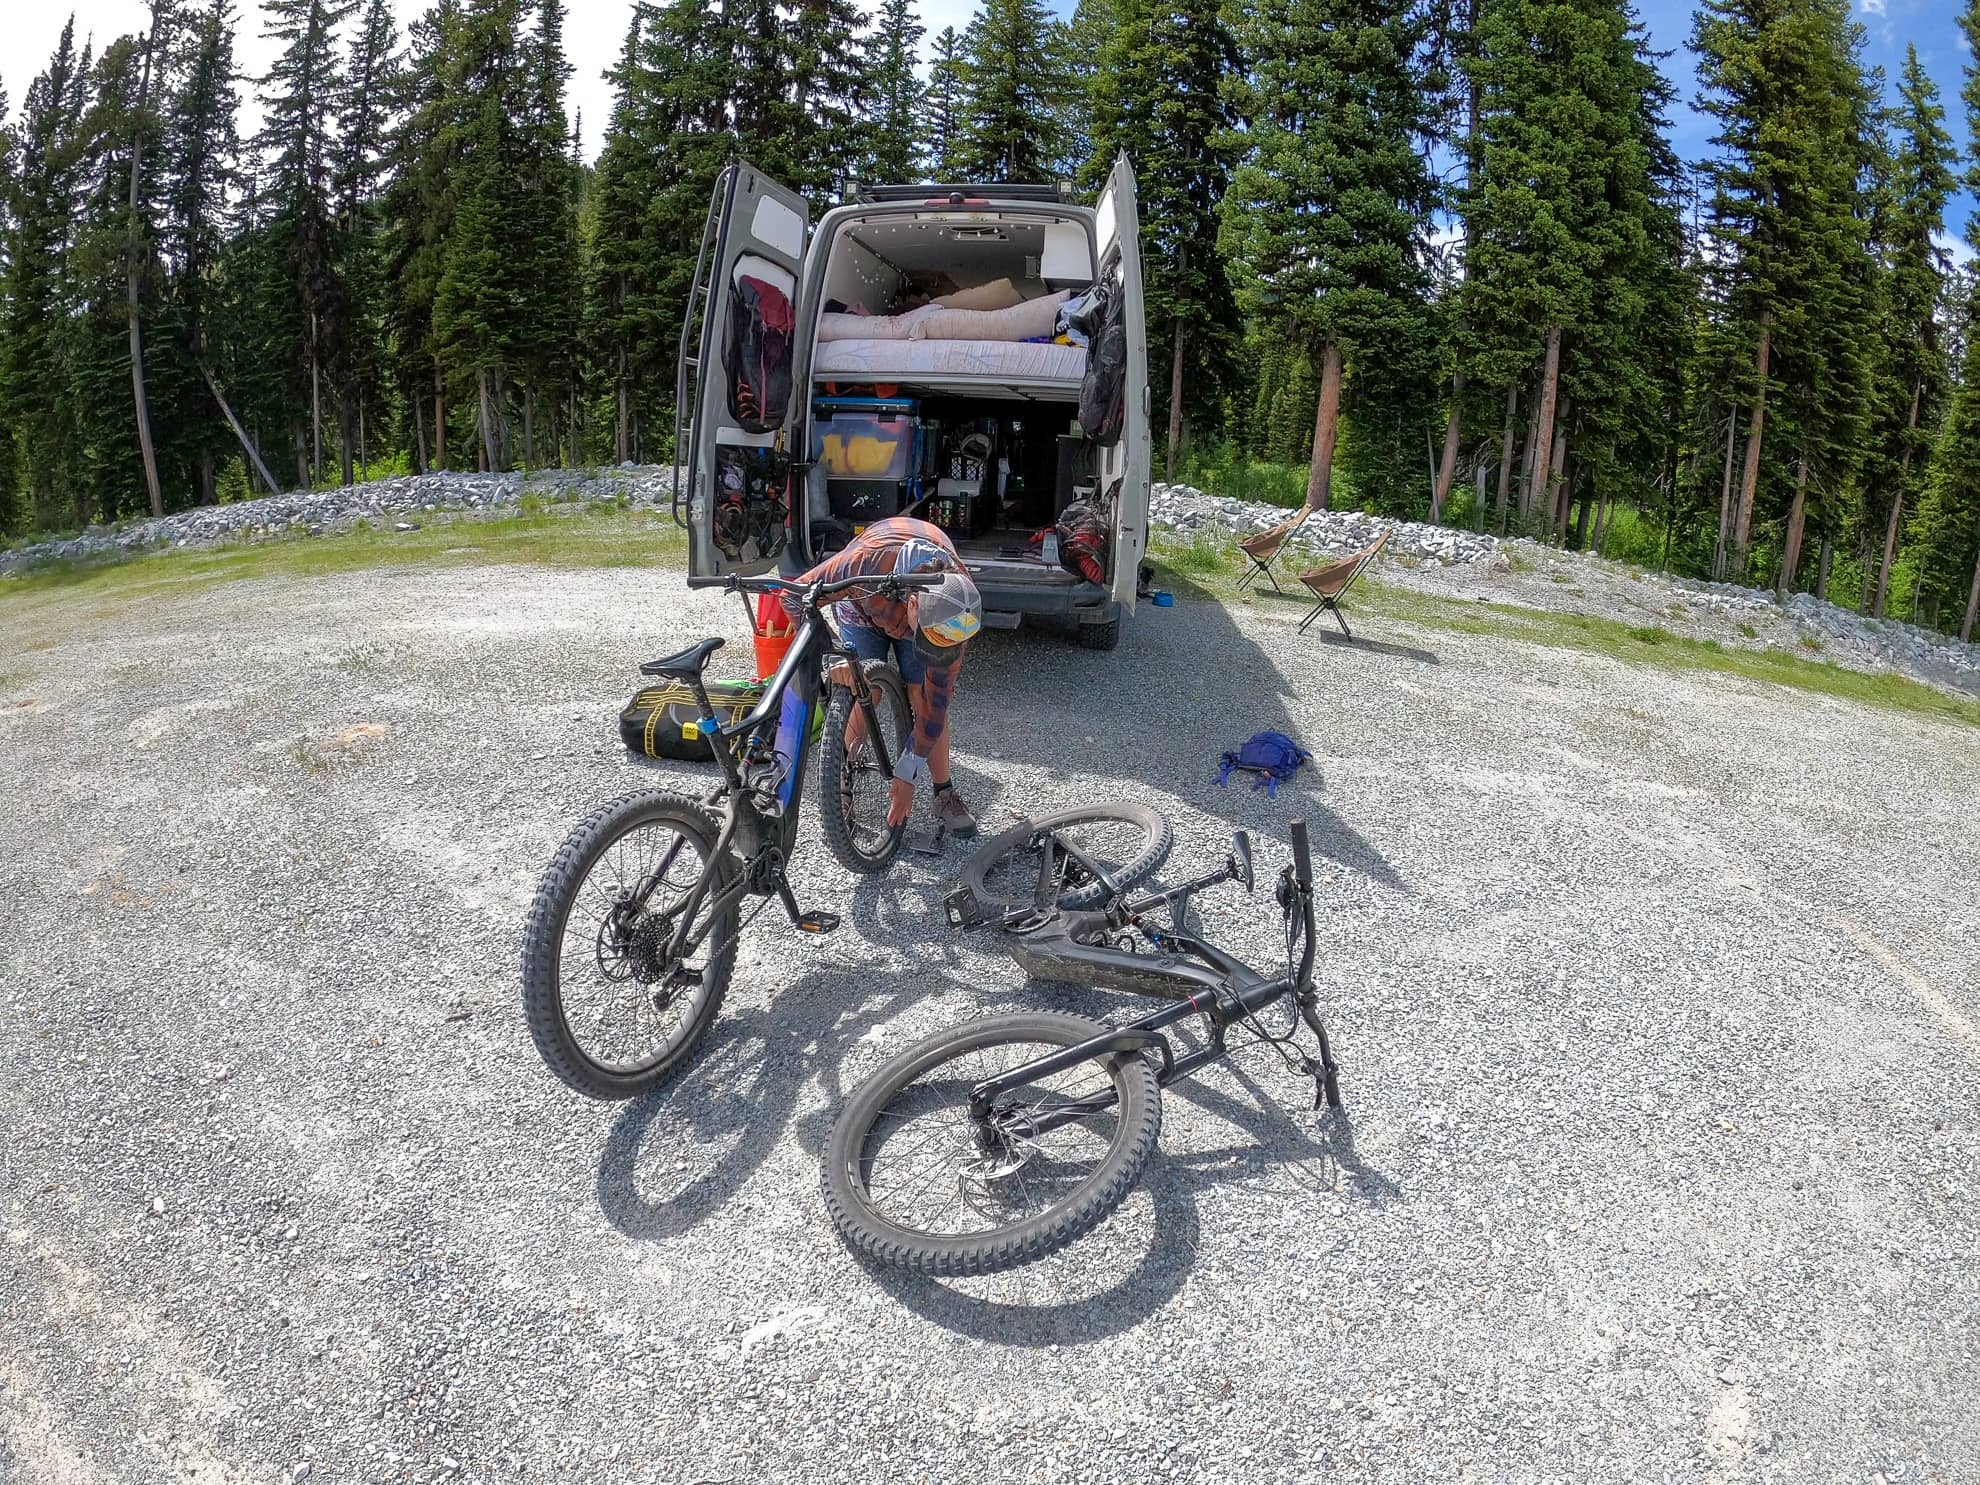 Learn how to plan fun and adventurous van life trips with these tips and resources for discovering awesome hikes, local amenities, and more.